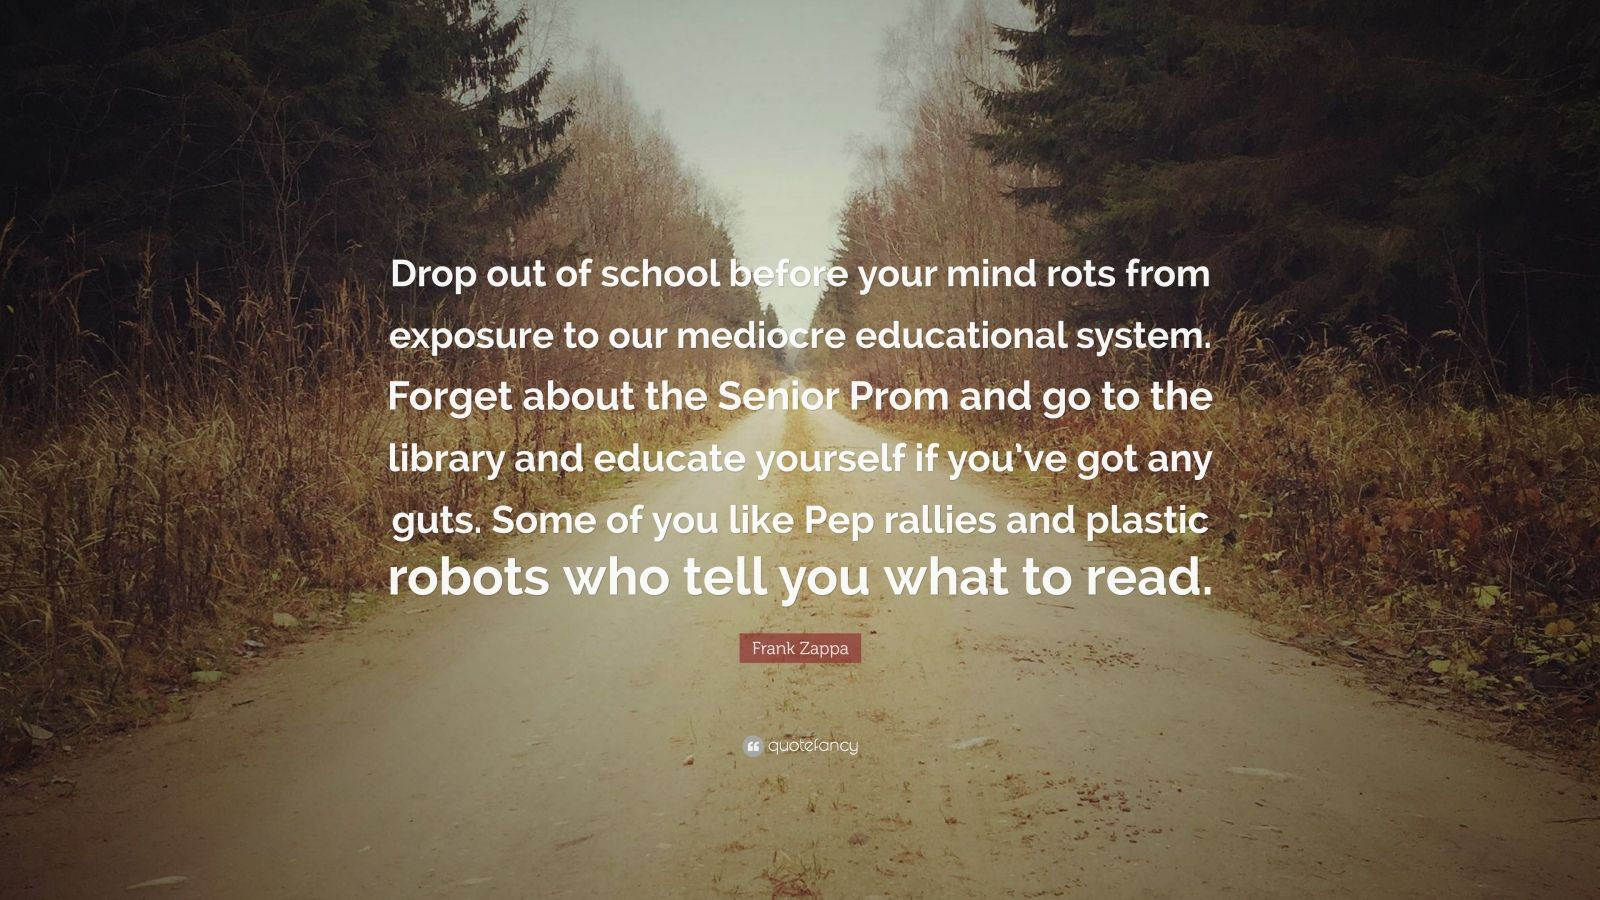 """Frank Zappa Quote: """"Drop out of school before your mind rots from exposure to our mediocre educational system. Forget about the Senior Prom and go to the library and educate yourself if you've got any guts. Some of you like Pep rallies and plastic robots who tell you what to read."""""""